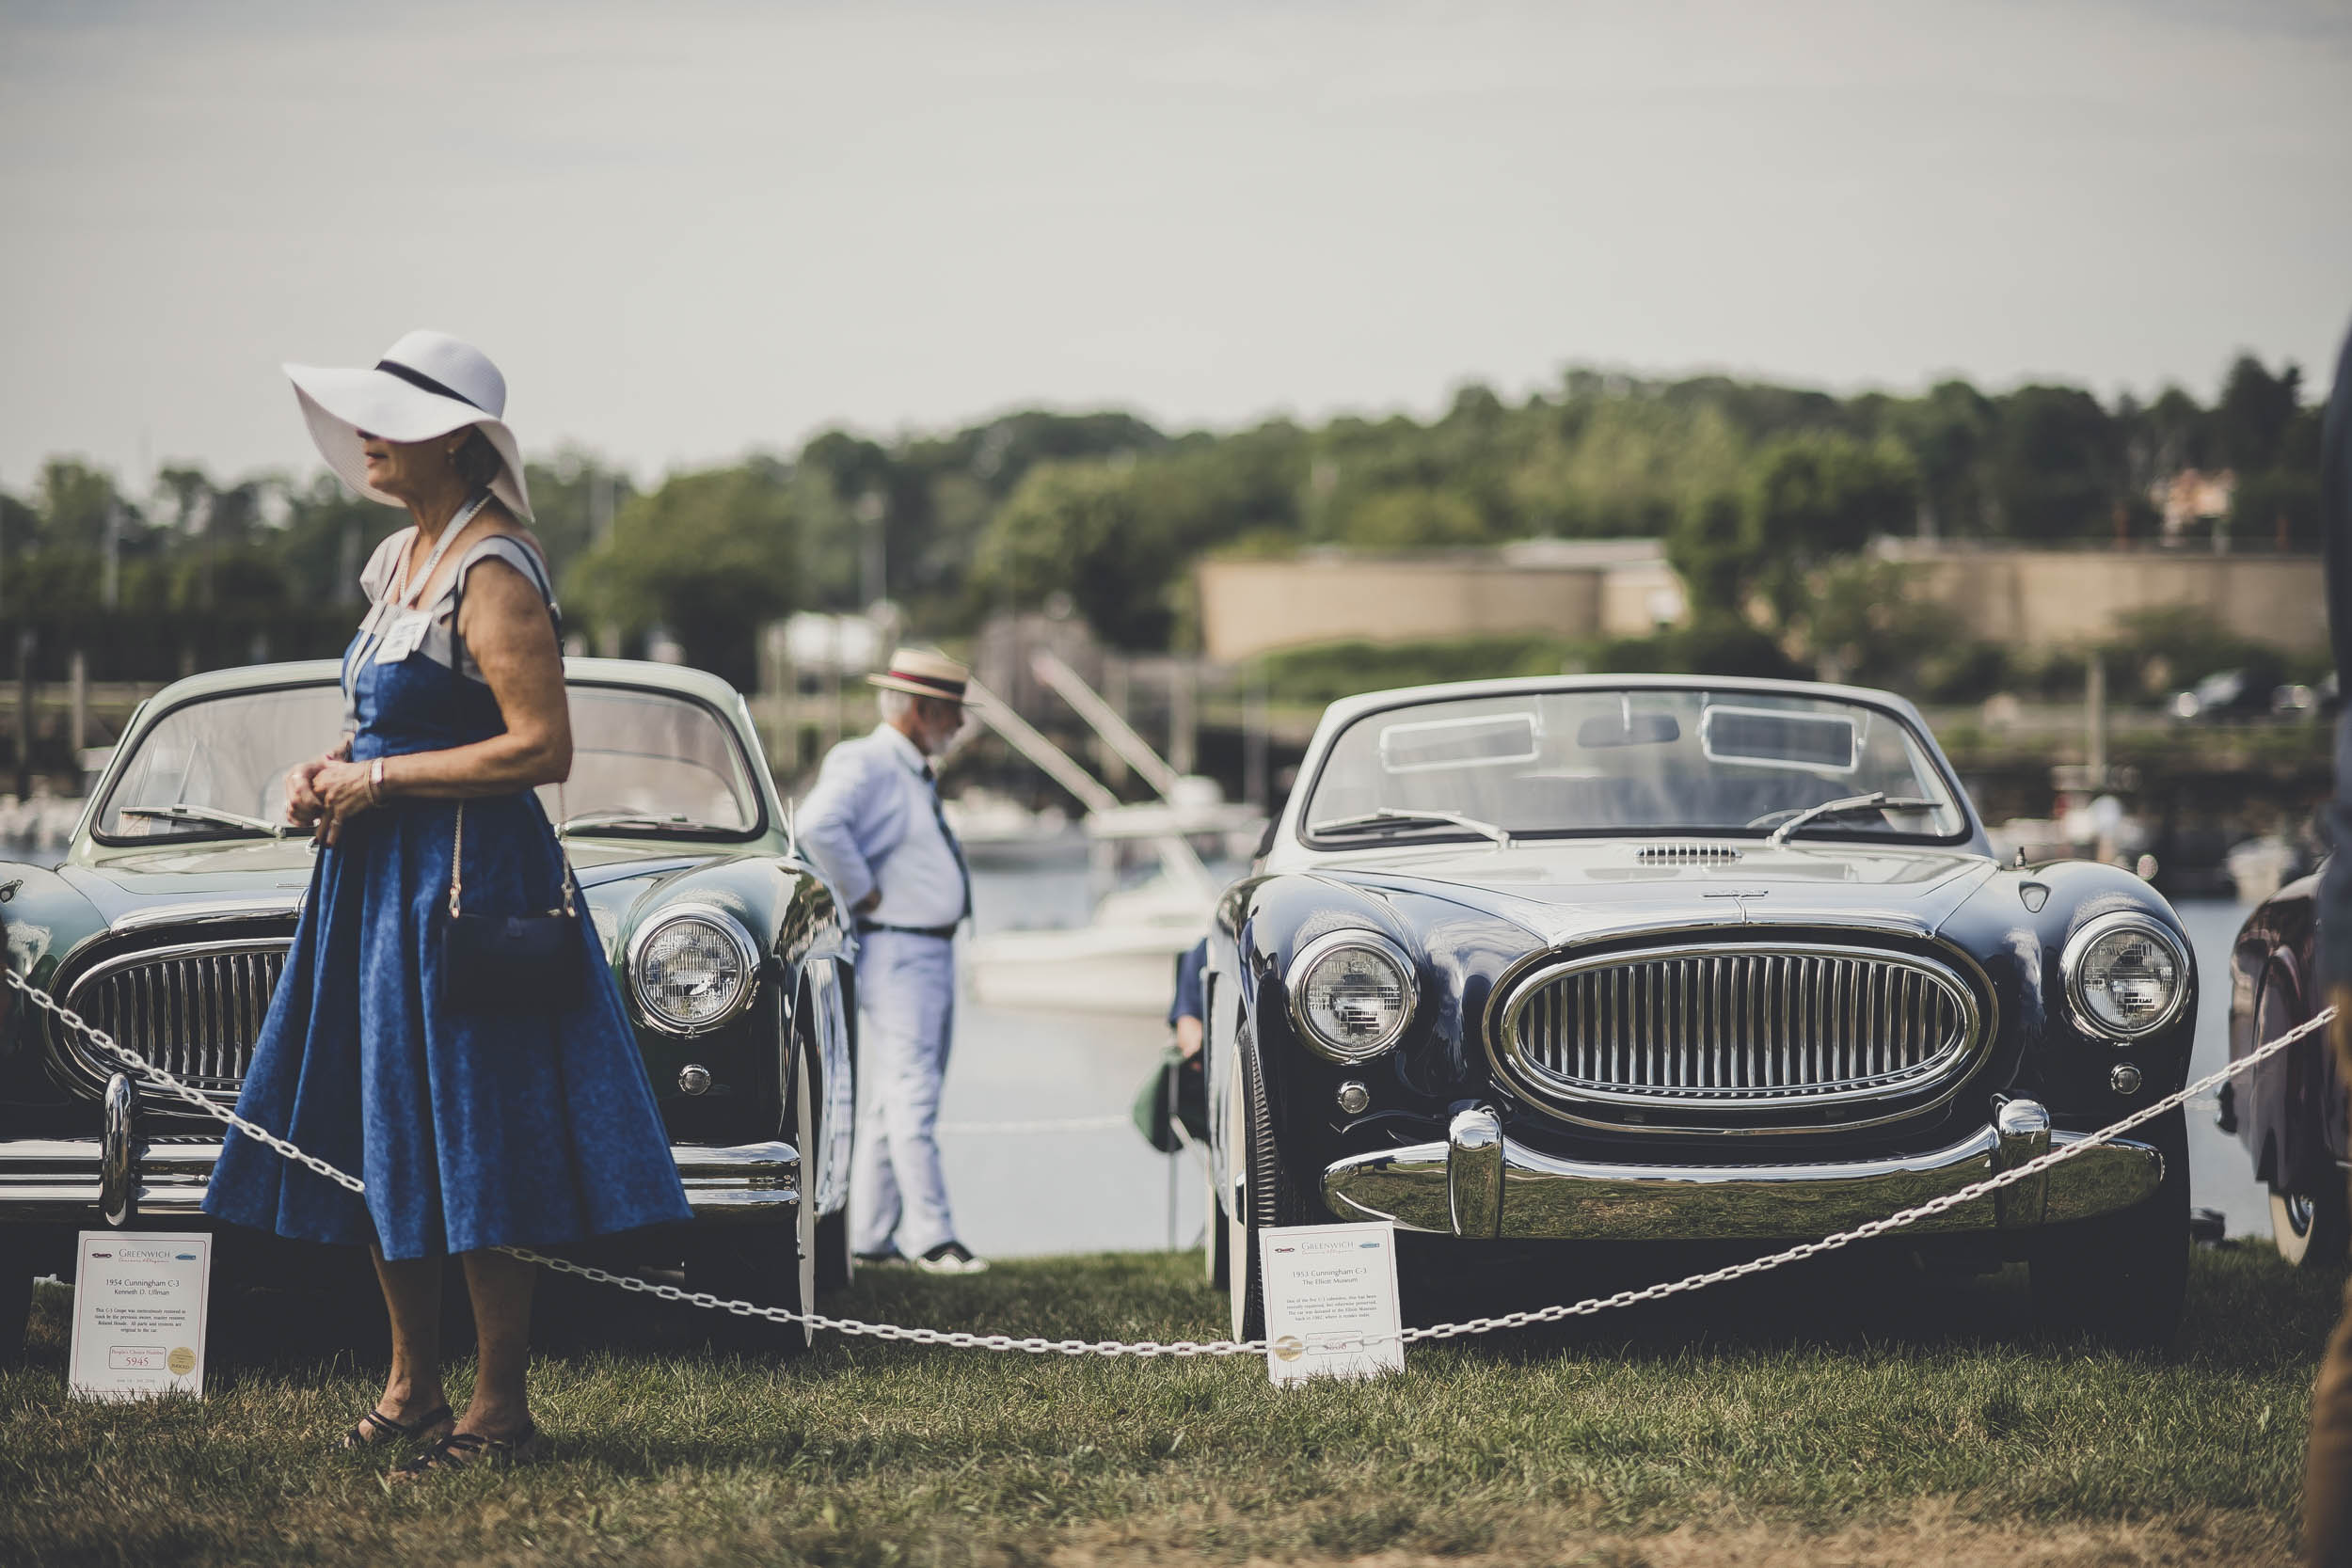 Cunninghams of all stripes convened on the privileged grass of Greenwich. The concurrent Bonhams auction sold a fairly rough C3 coupe that day for $313,000; pristine road cars go for a million or more, proving that Cunningham's following continues to grow.